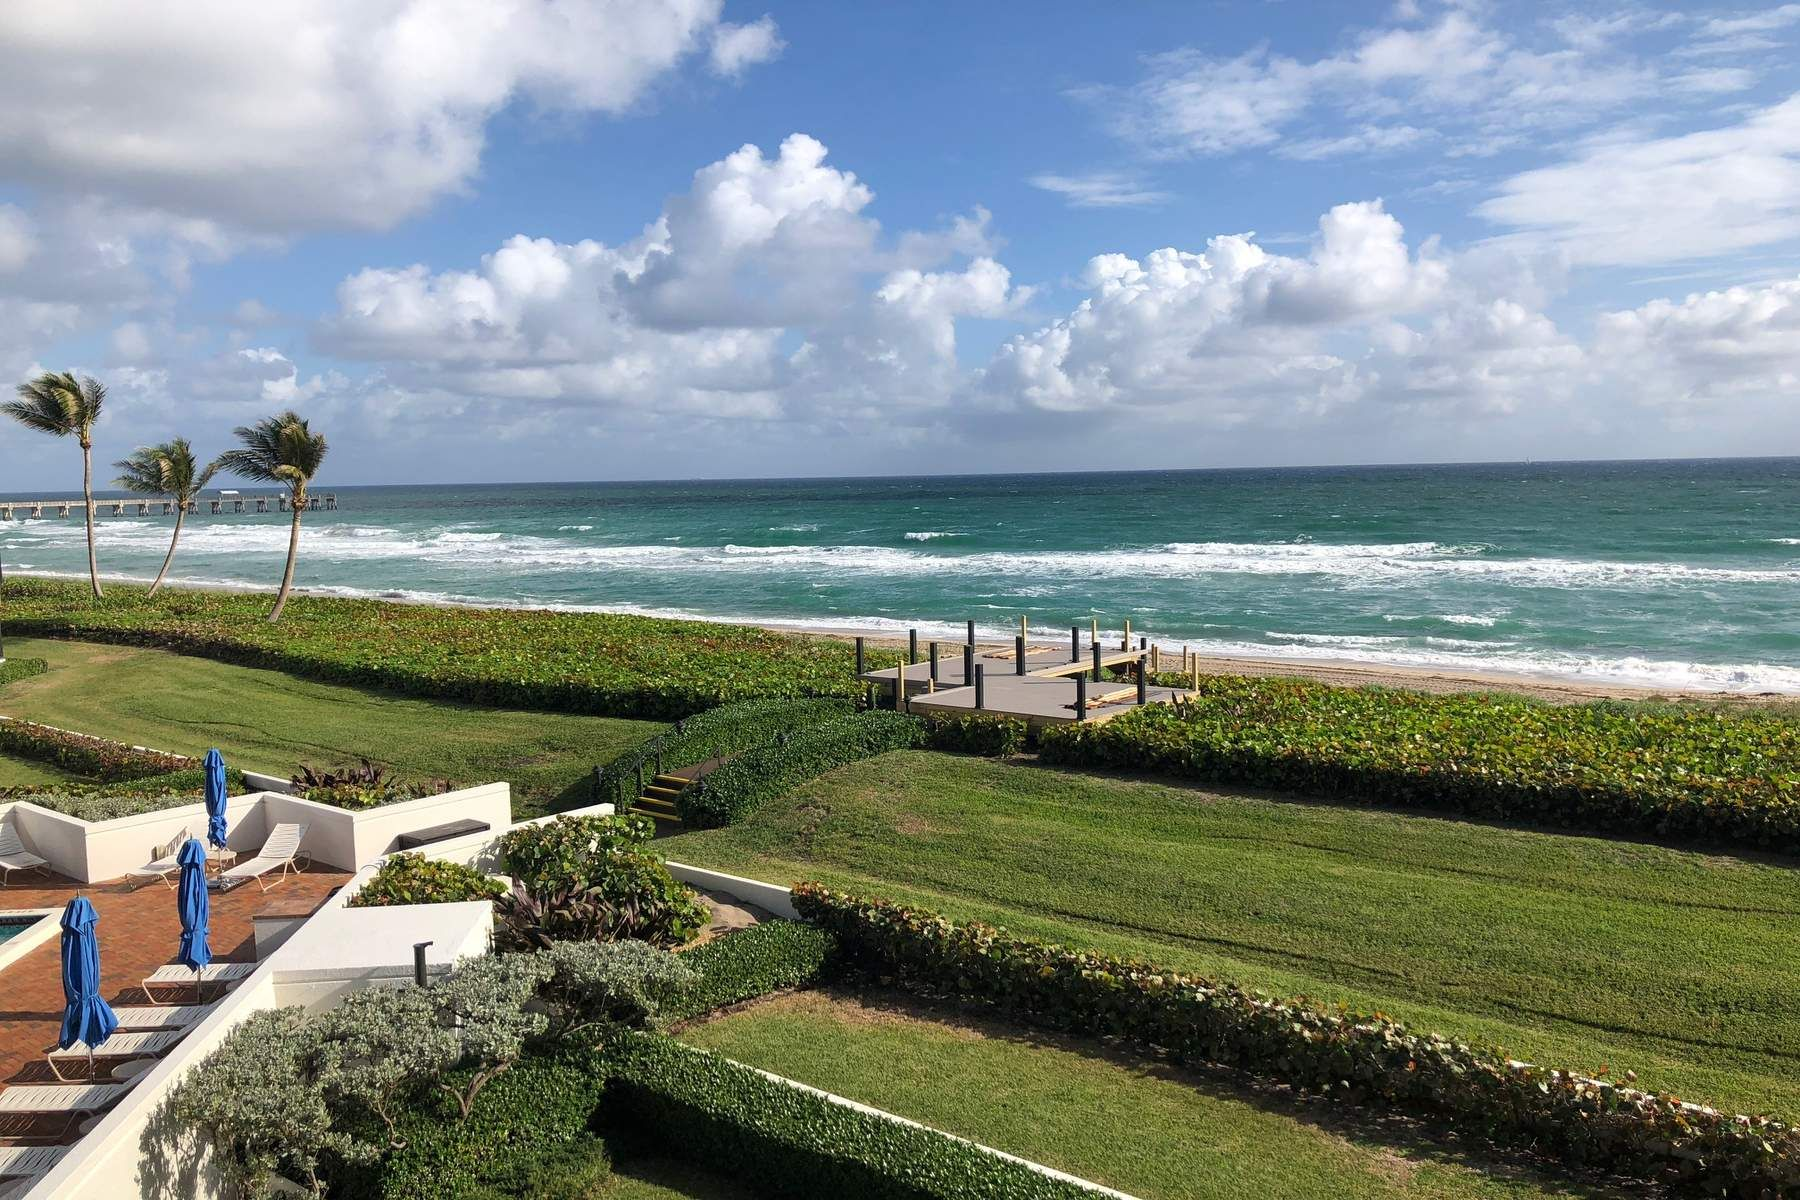 Condominium for Sale at Contemporary Oceanfront Oasis 3120 S Ocean Blvd 1-101, Palm Beach, Florida, 33480 United States